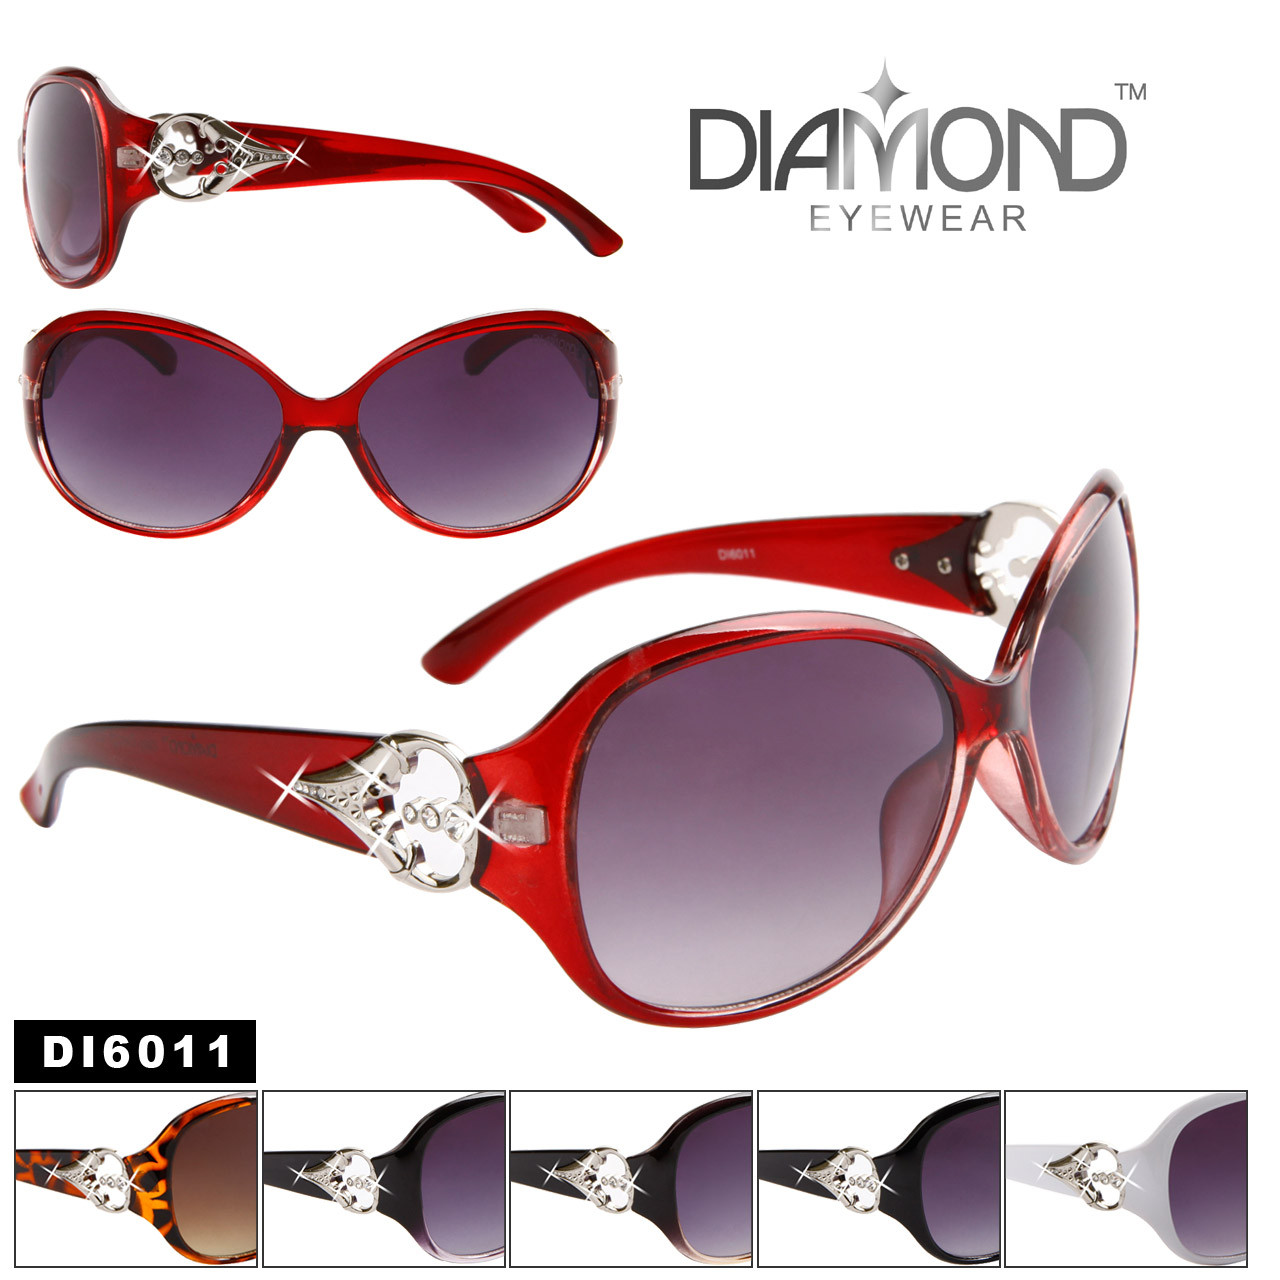 Wholesale Diamond™ Eyewear Sunglasses - DI6011 (Assorted Colors) (12 pcs.)